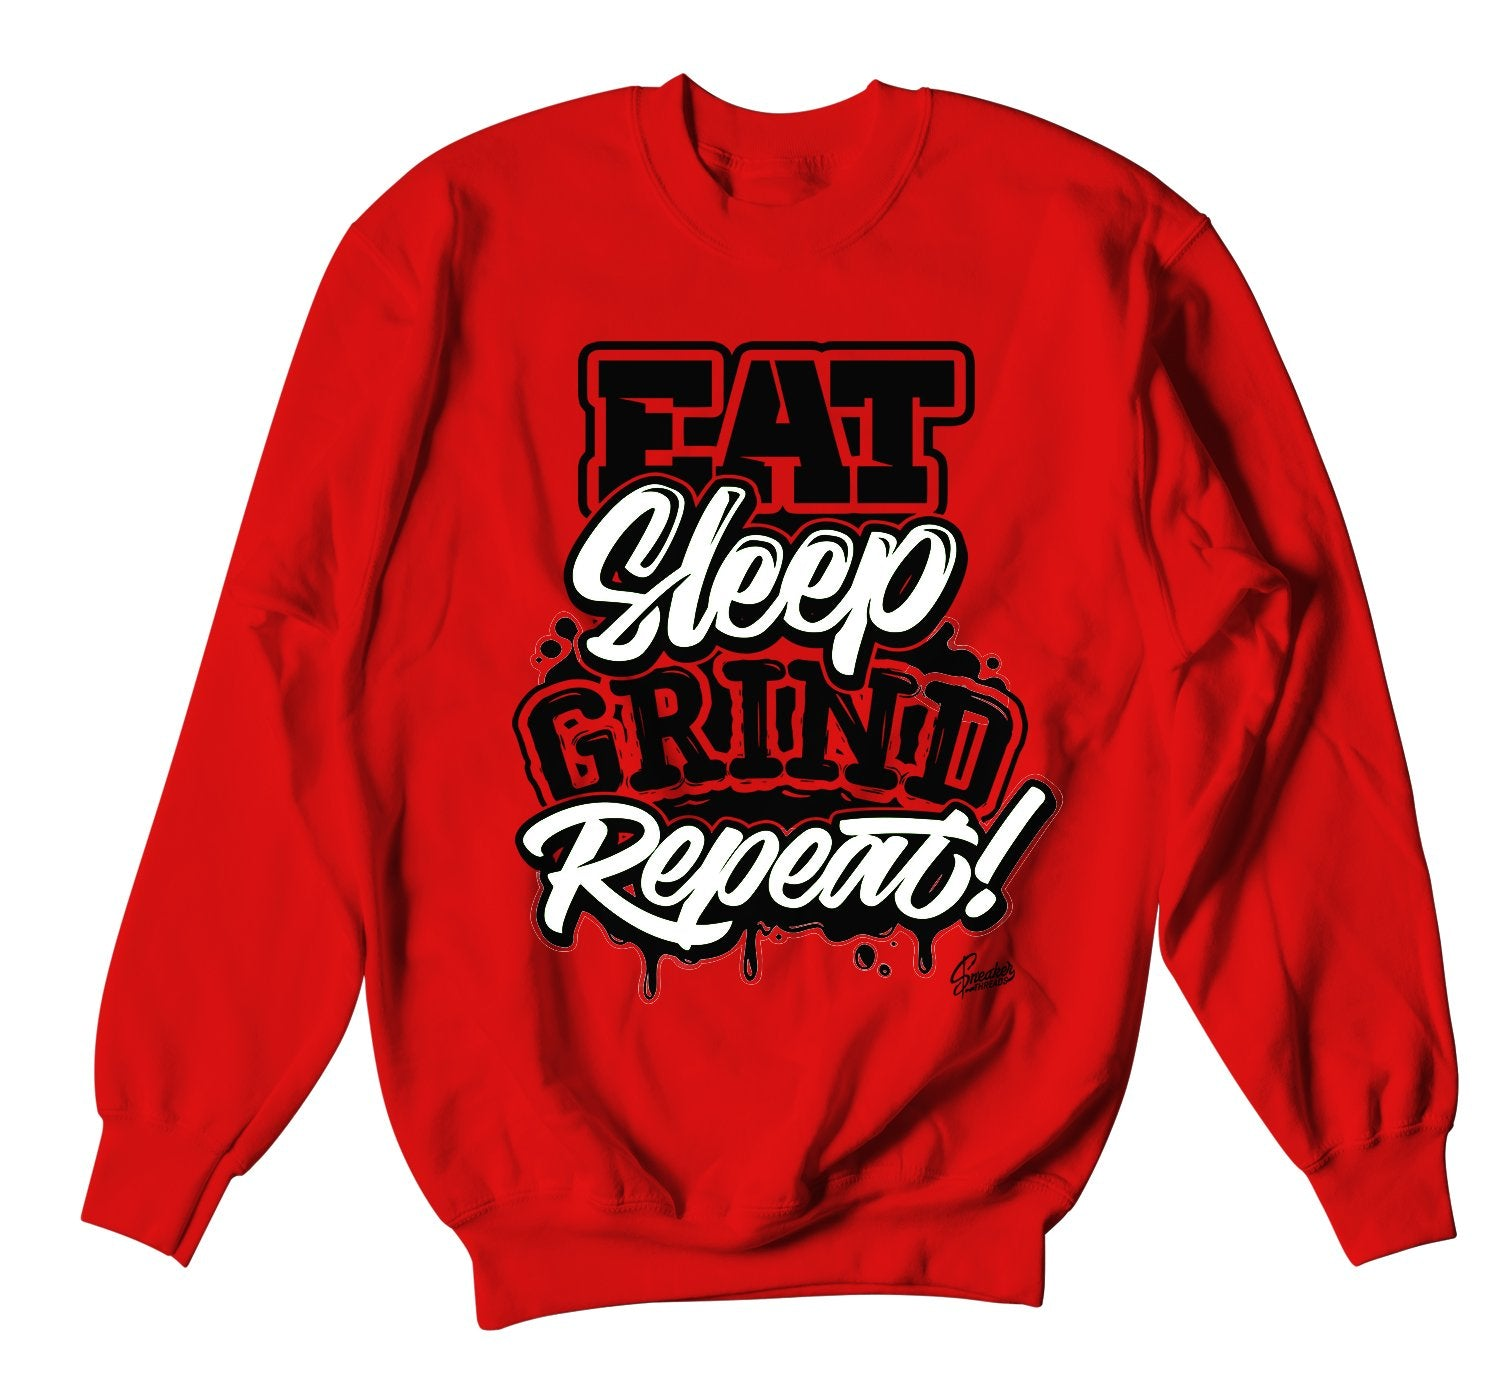 red crewnecks designed to match perfectly with the bred 11 sneakers